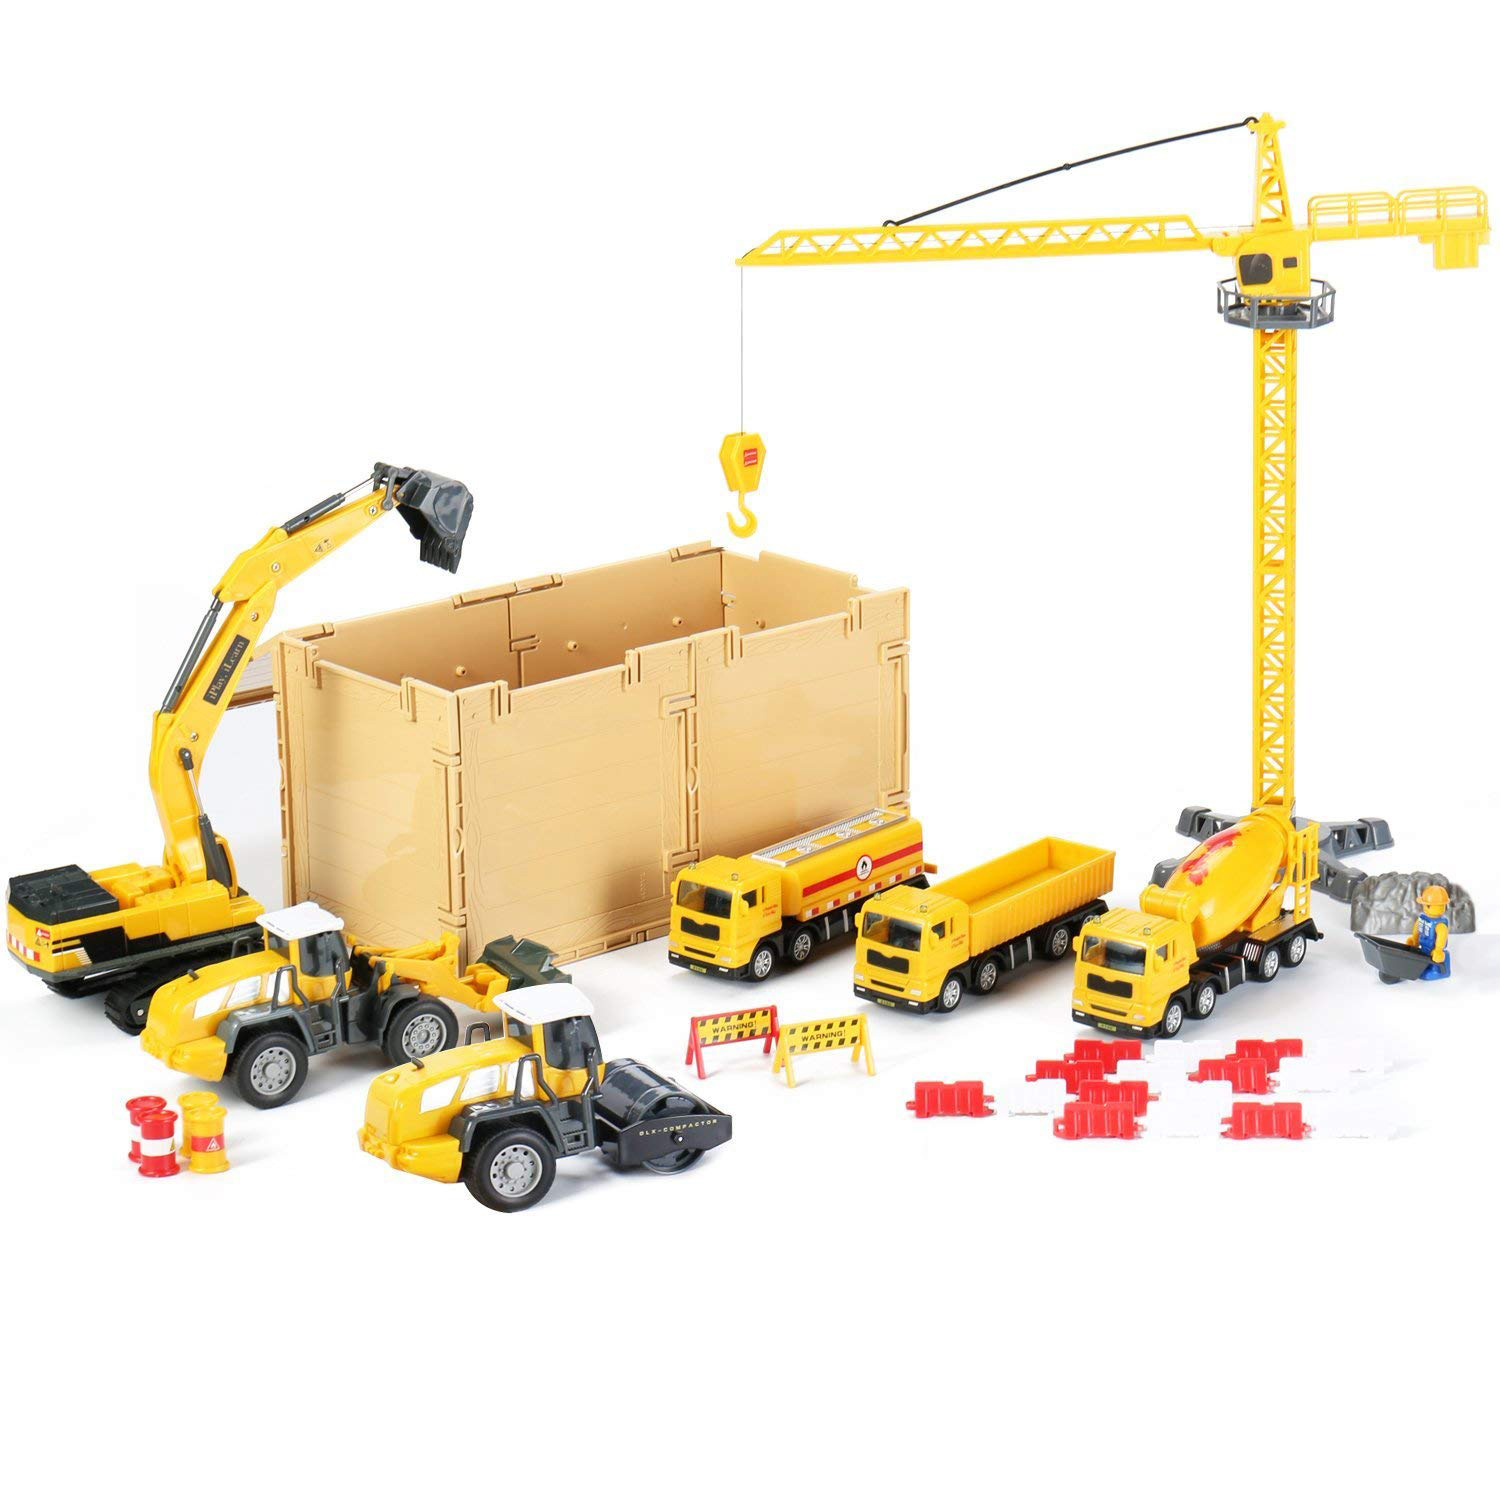 Construction Site Vehicles Toy Set,Engineering Playset ...